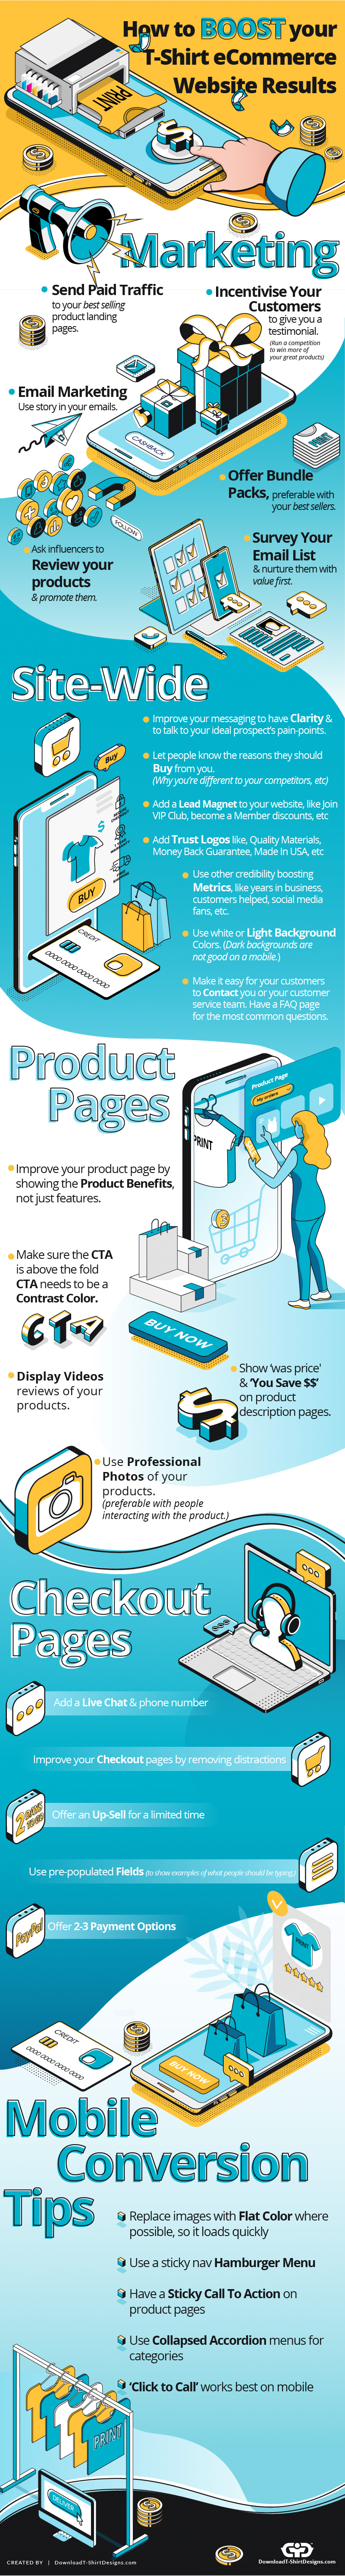 downloadt-shirtdesigns-how-to-boost-your-t-shirt-ecommerce-website-results-infographic